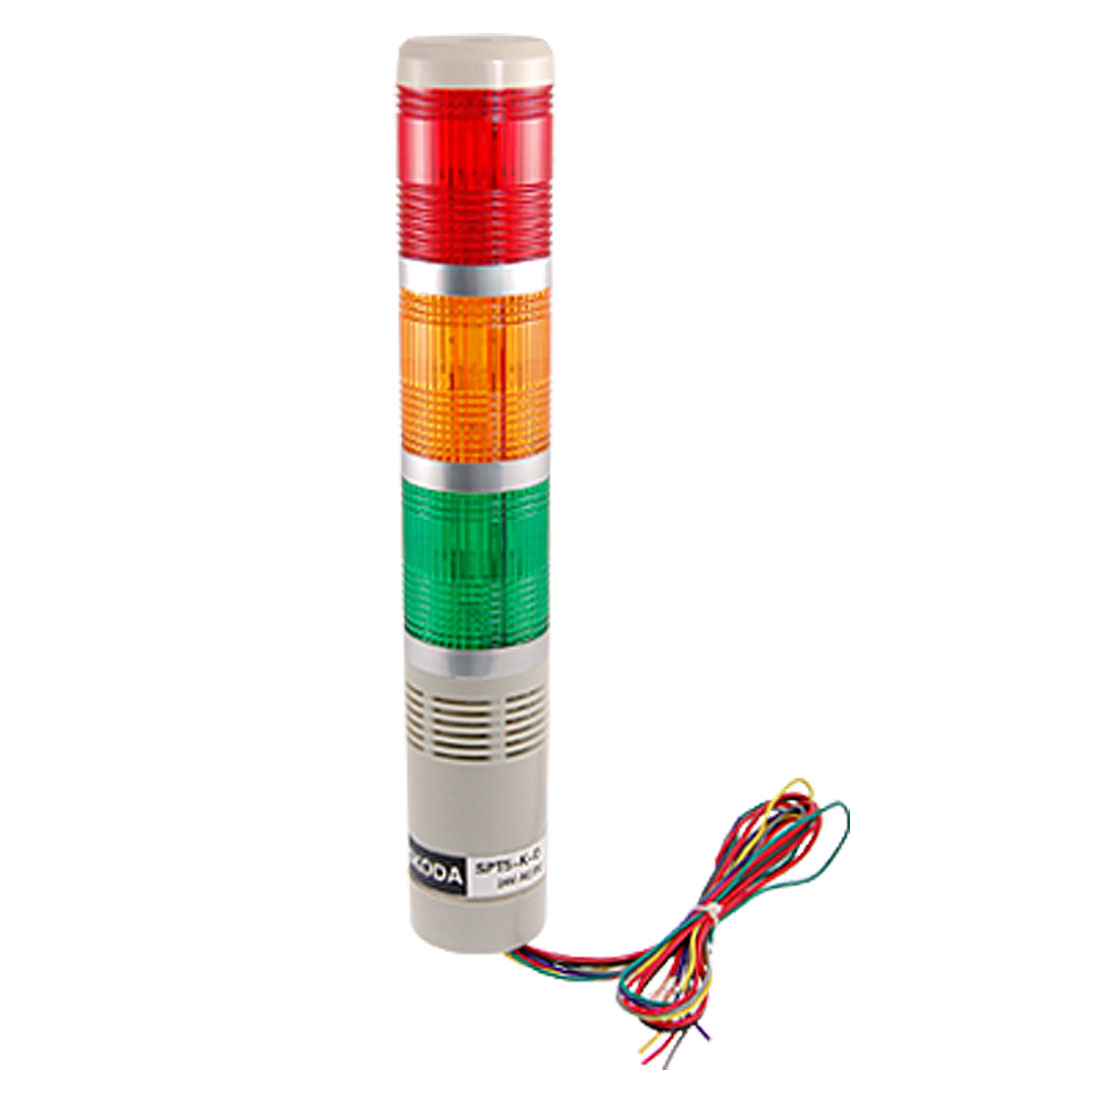 Industrial Signal Tower Light Red Green Yellow LED Alarm Lamp 24V